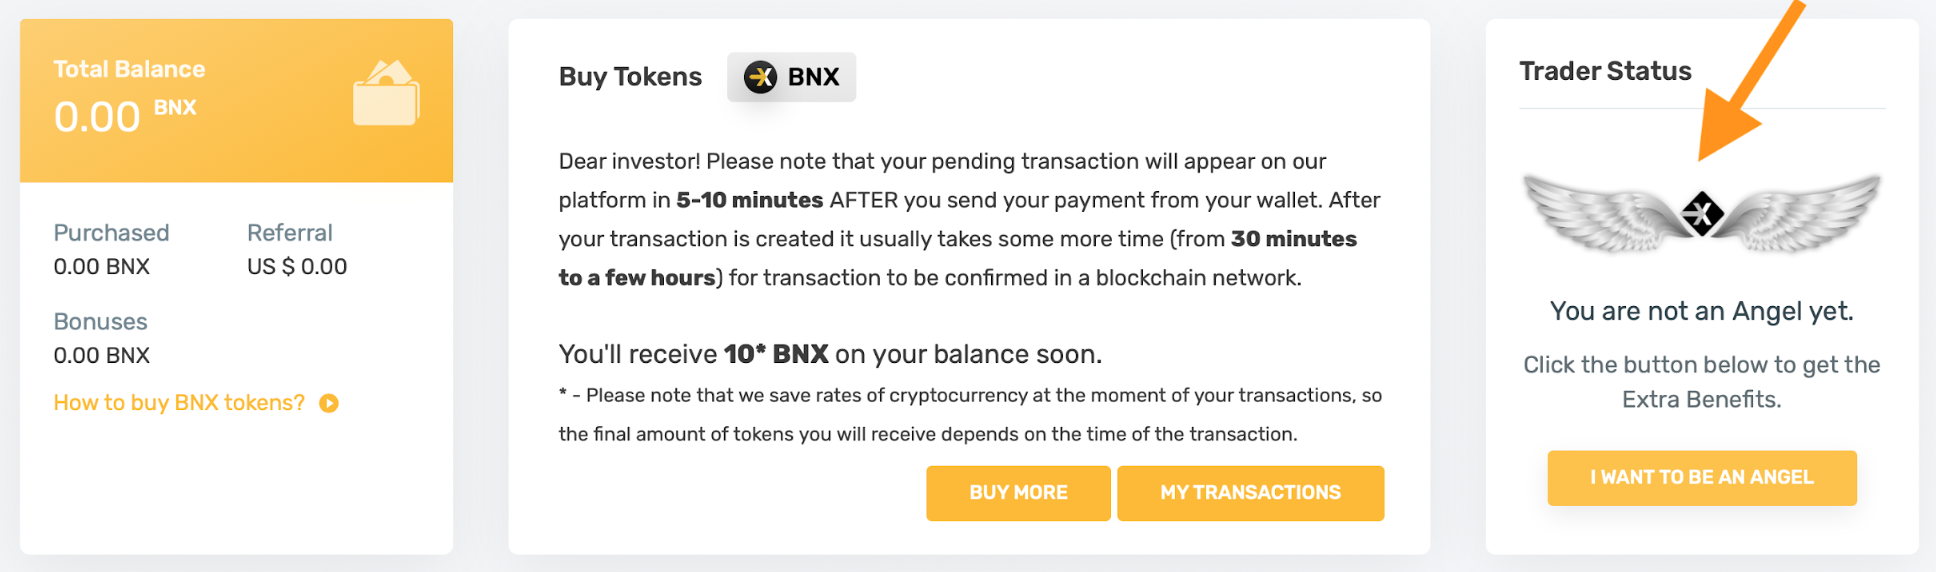 transfer BNX to the OTC platform